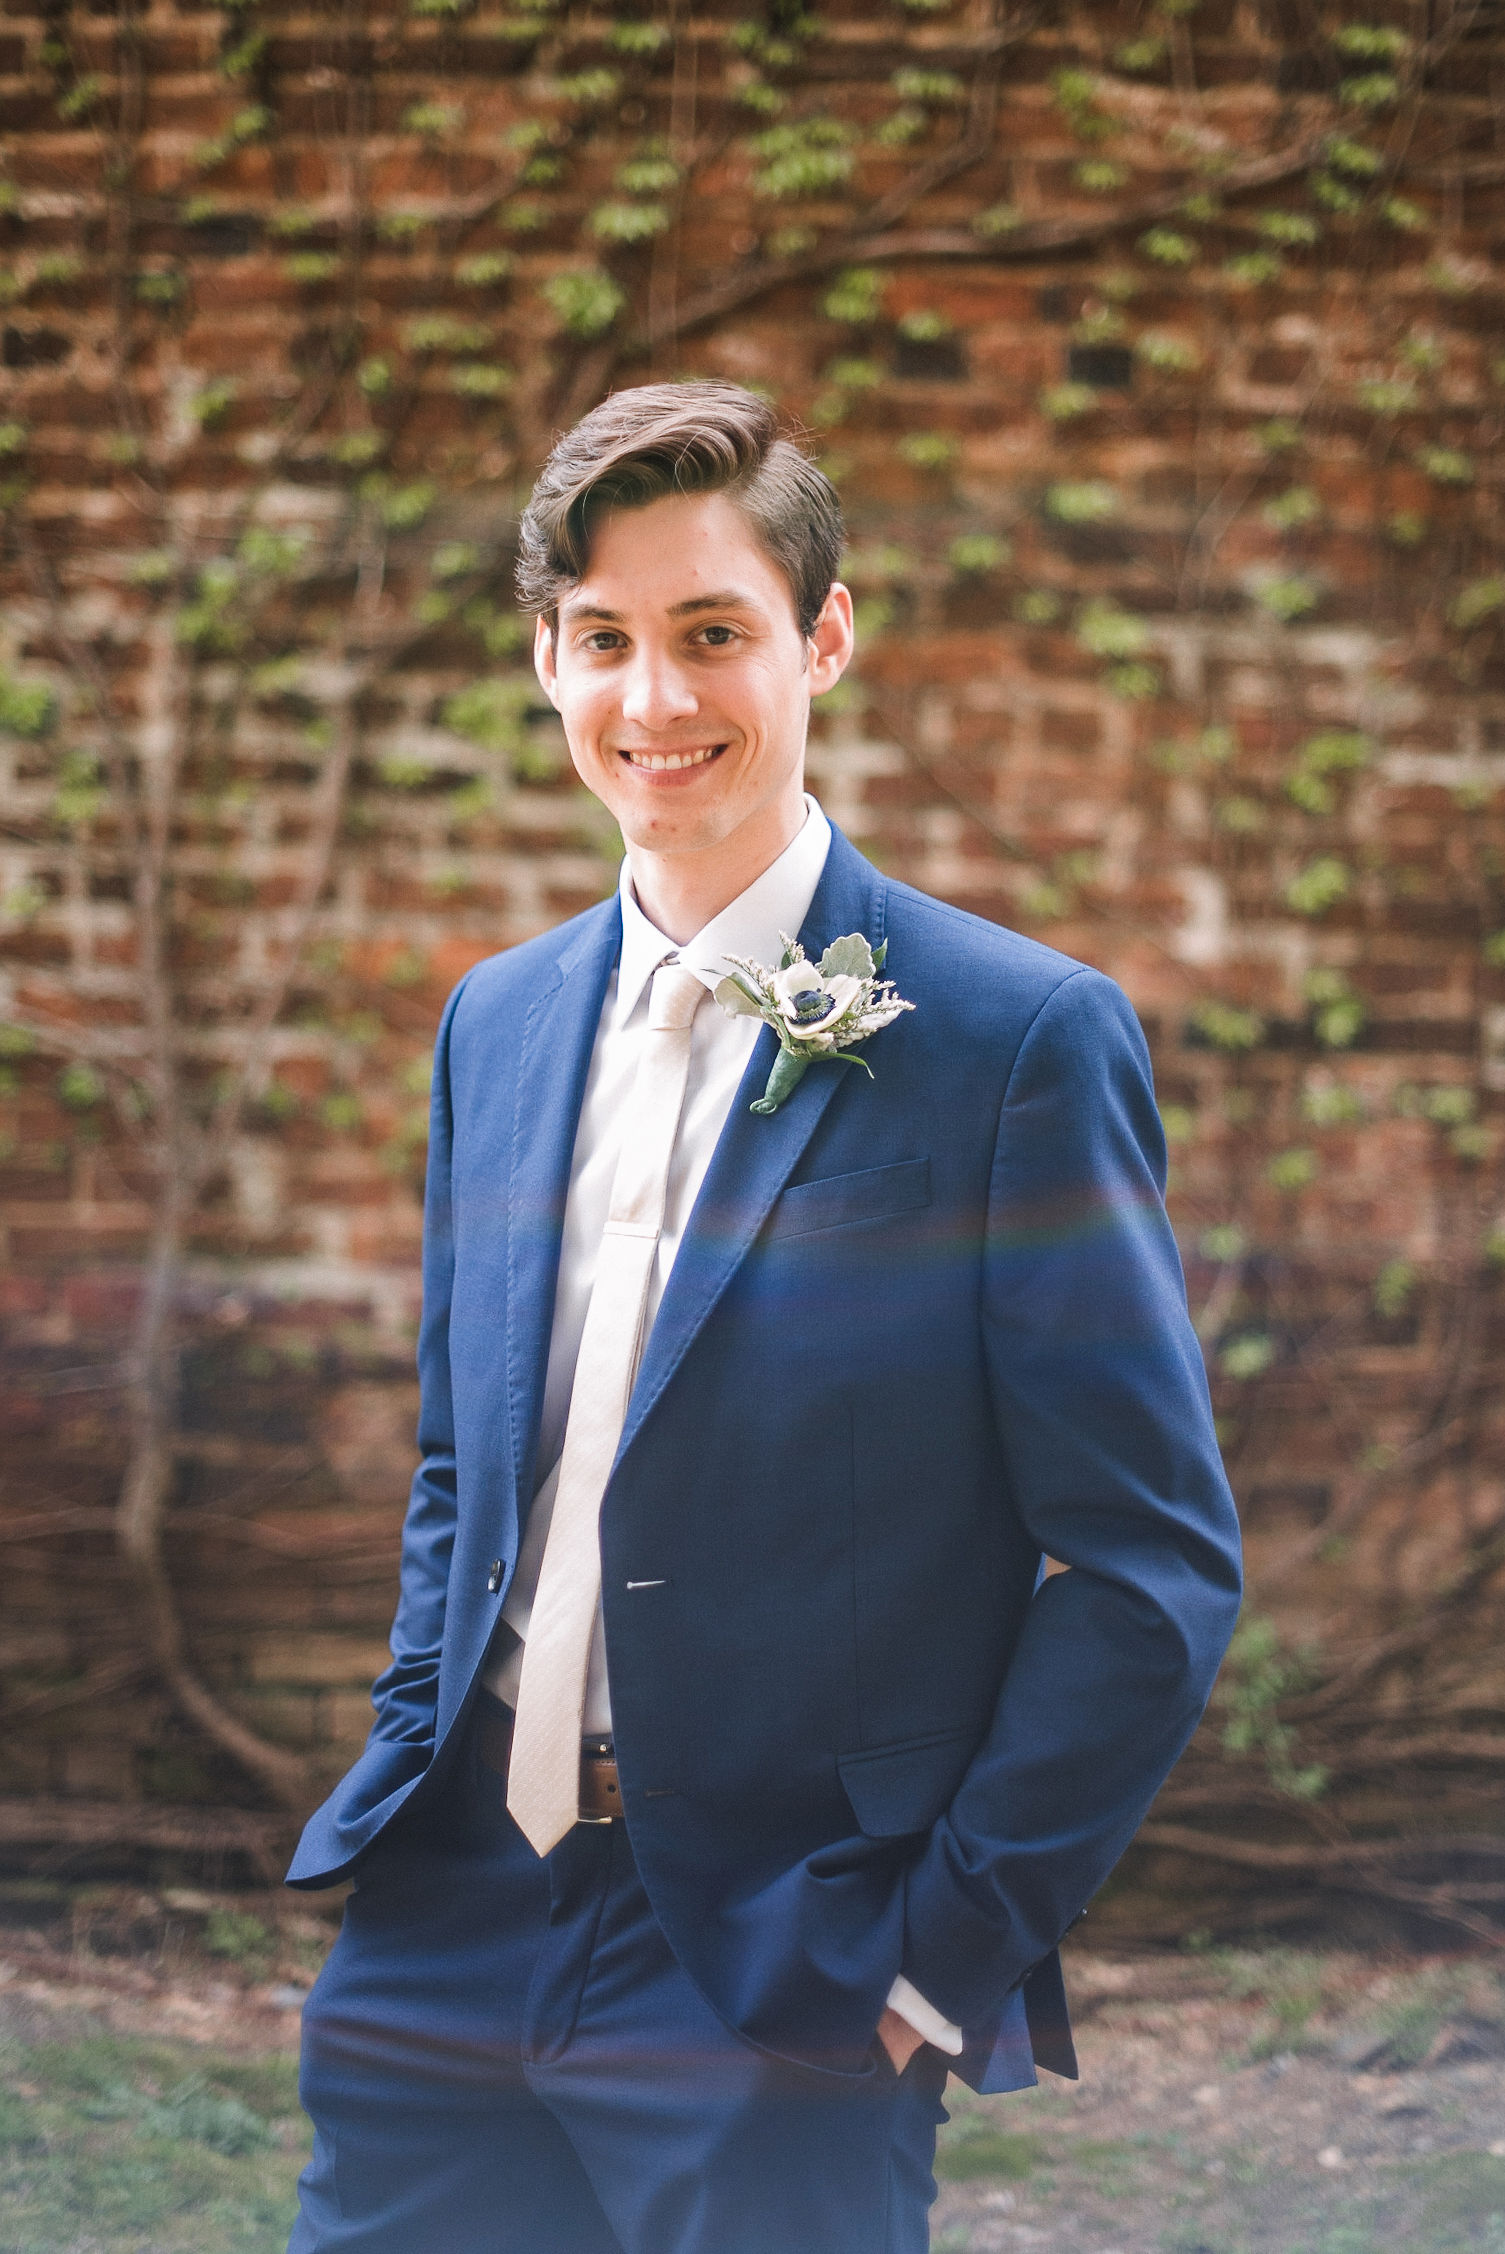 Groom Portrait at the Inn at the Old Silk Mill